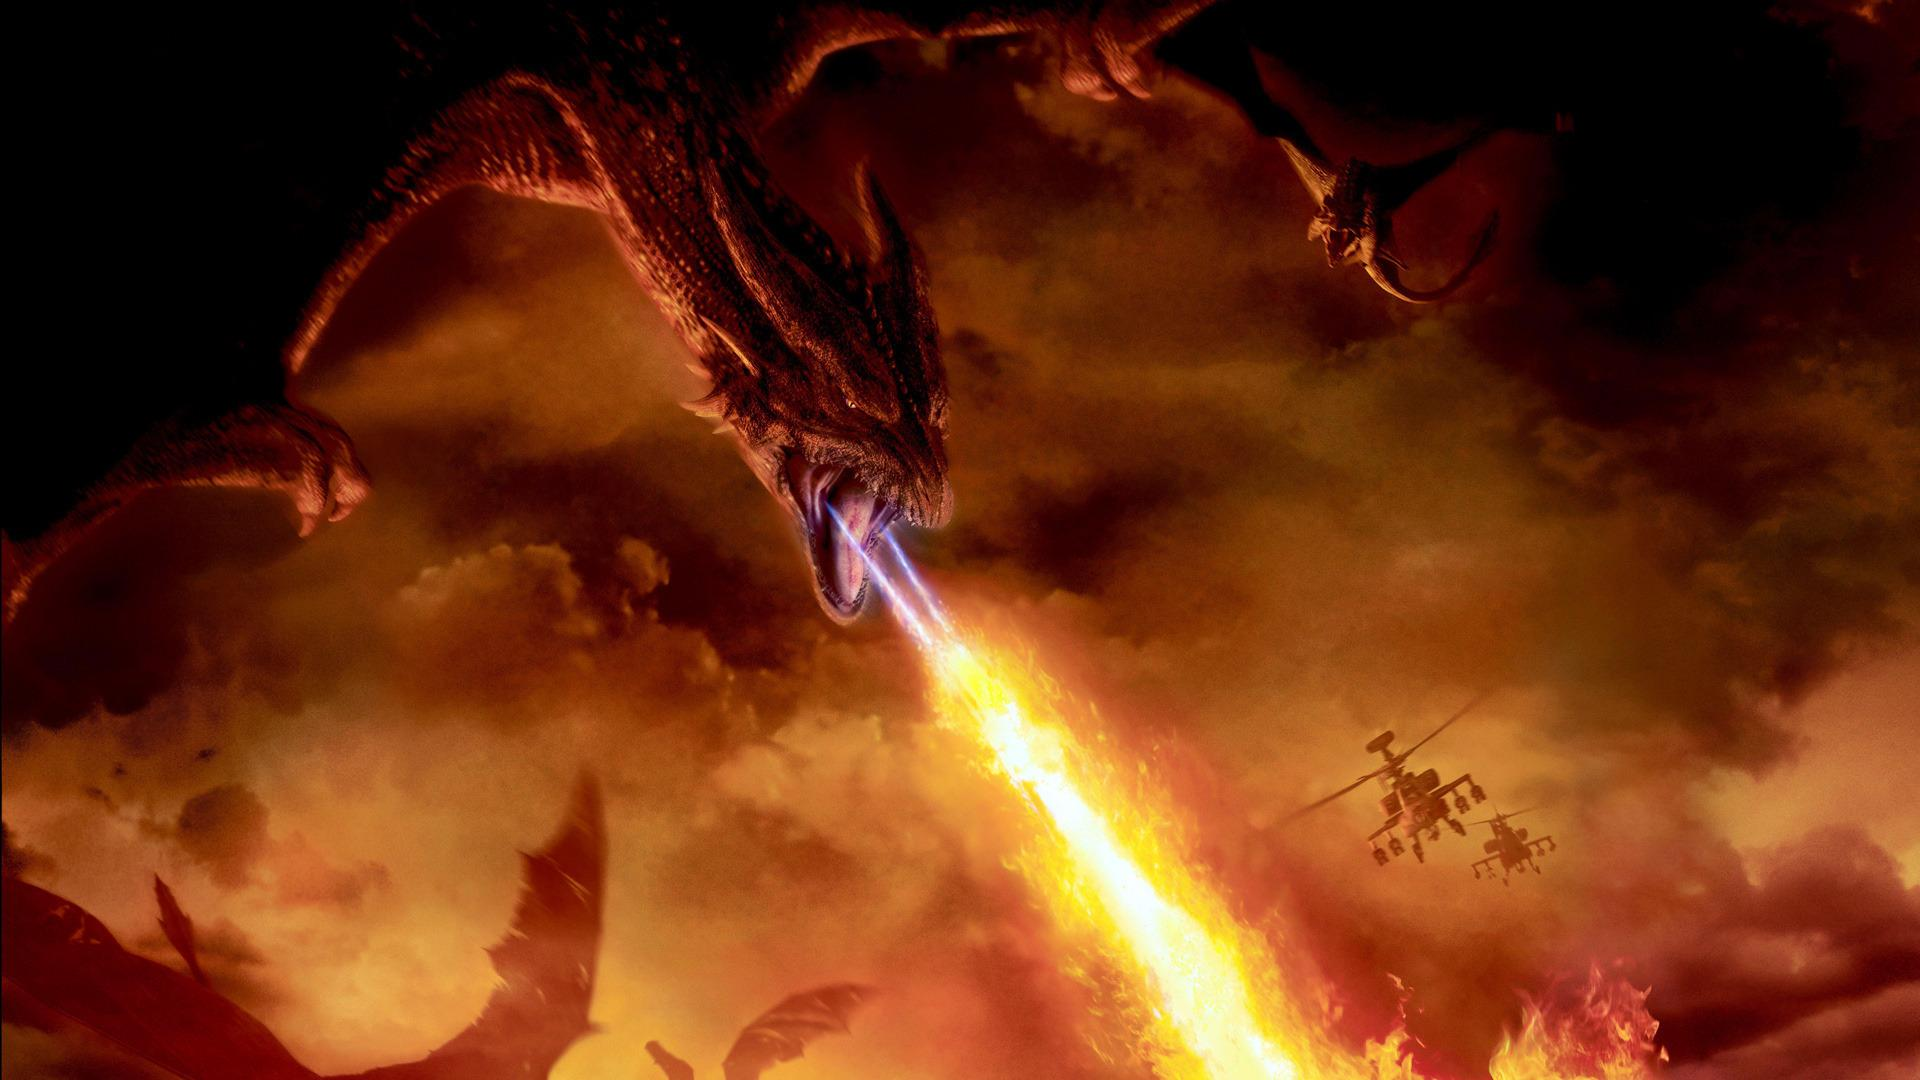 Dragon Fire Helicopter London movies movie dragons battle wallpaper 1920x1080